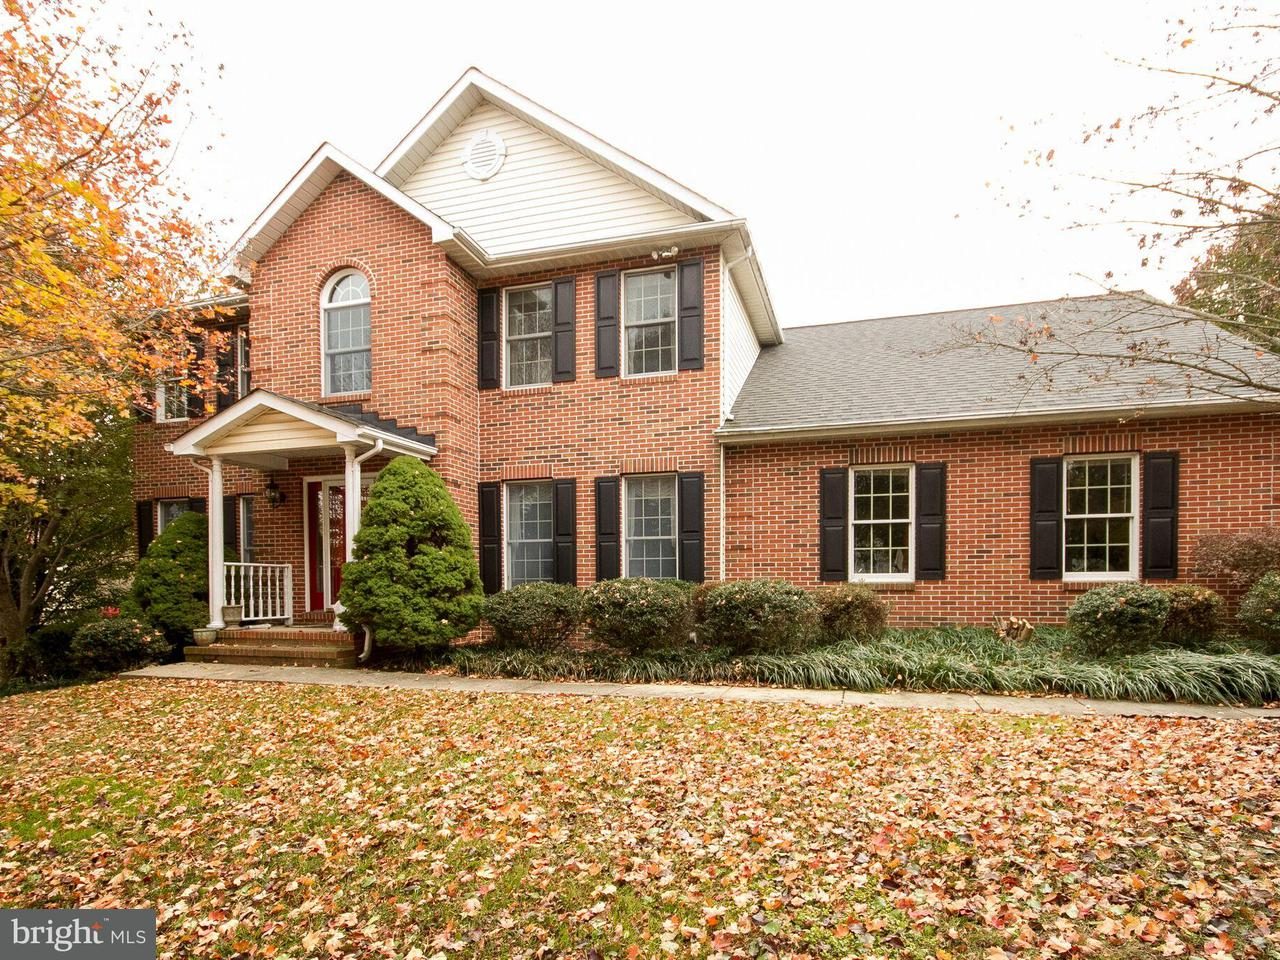 Single Family Home for Sale at 105 ROSELAWN Court 105 ROSELAWN Court Bel Air, Maryland 21014 United States